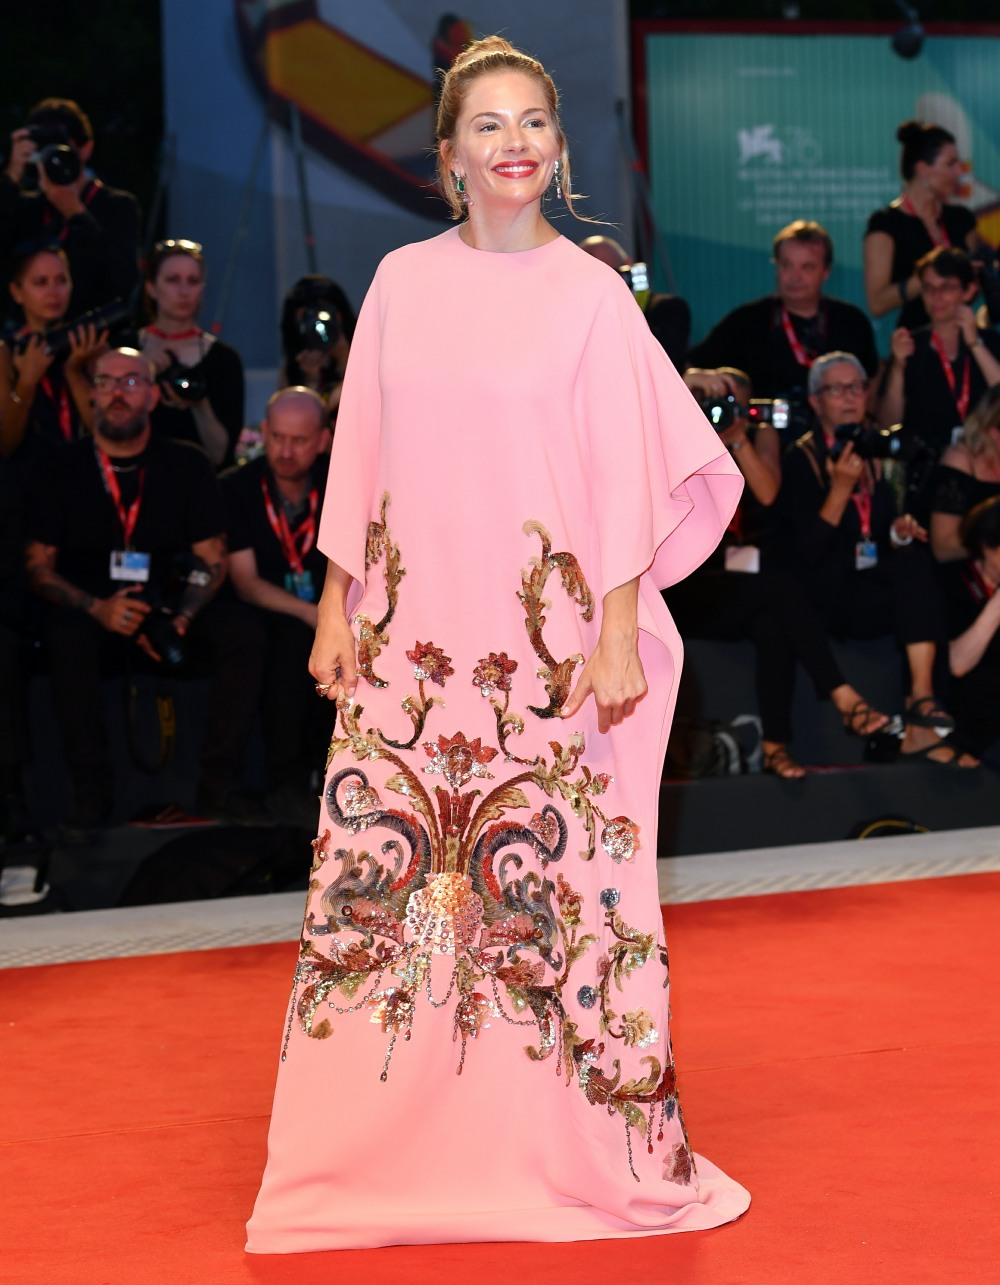 Sienna Miller during the Red carpet of Kineo Award at the 76th Venice Film Festival, Venice, ITALY-01-09-2019